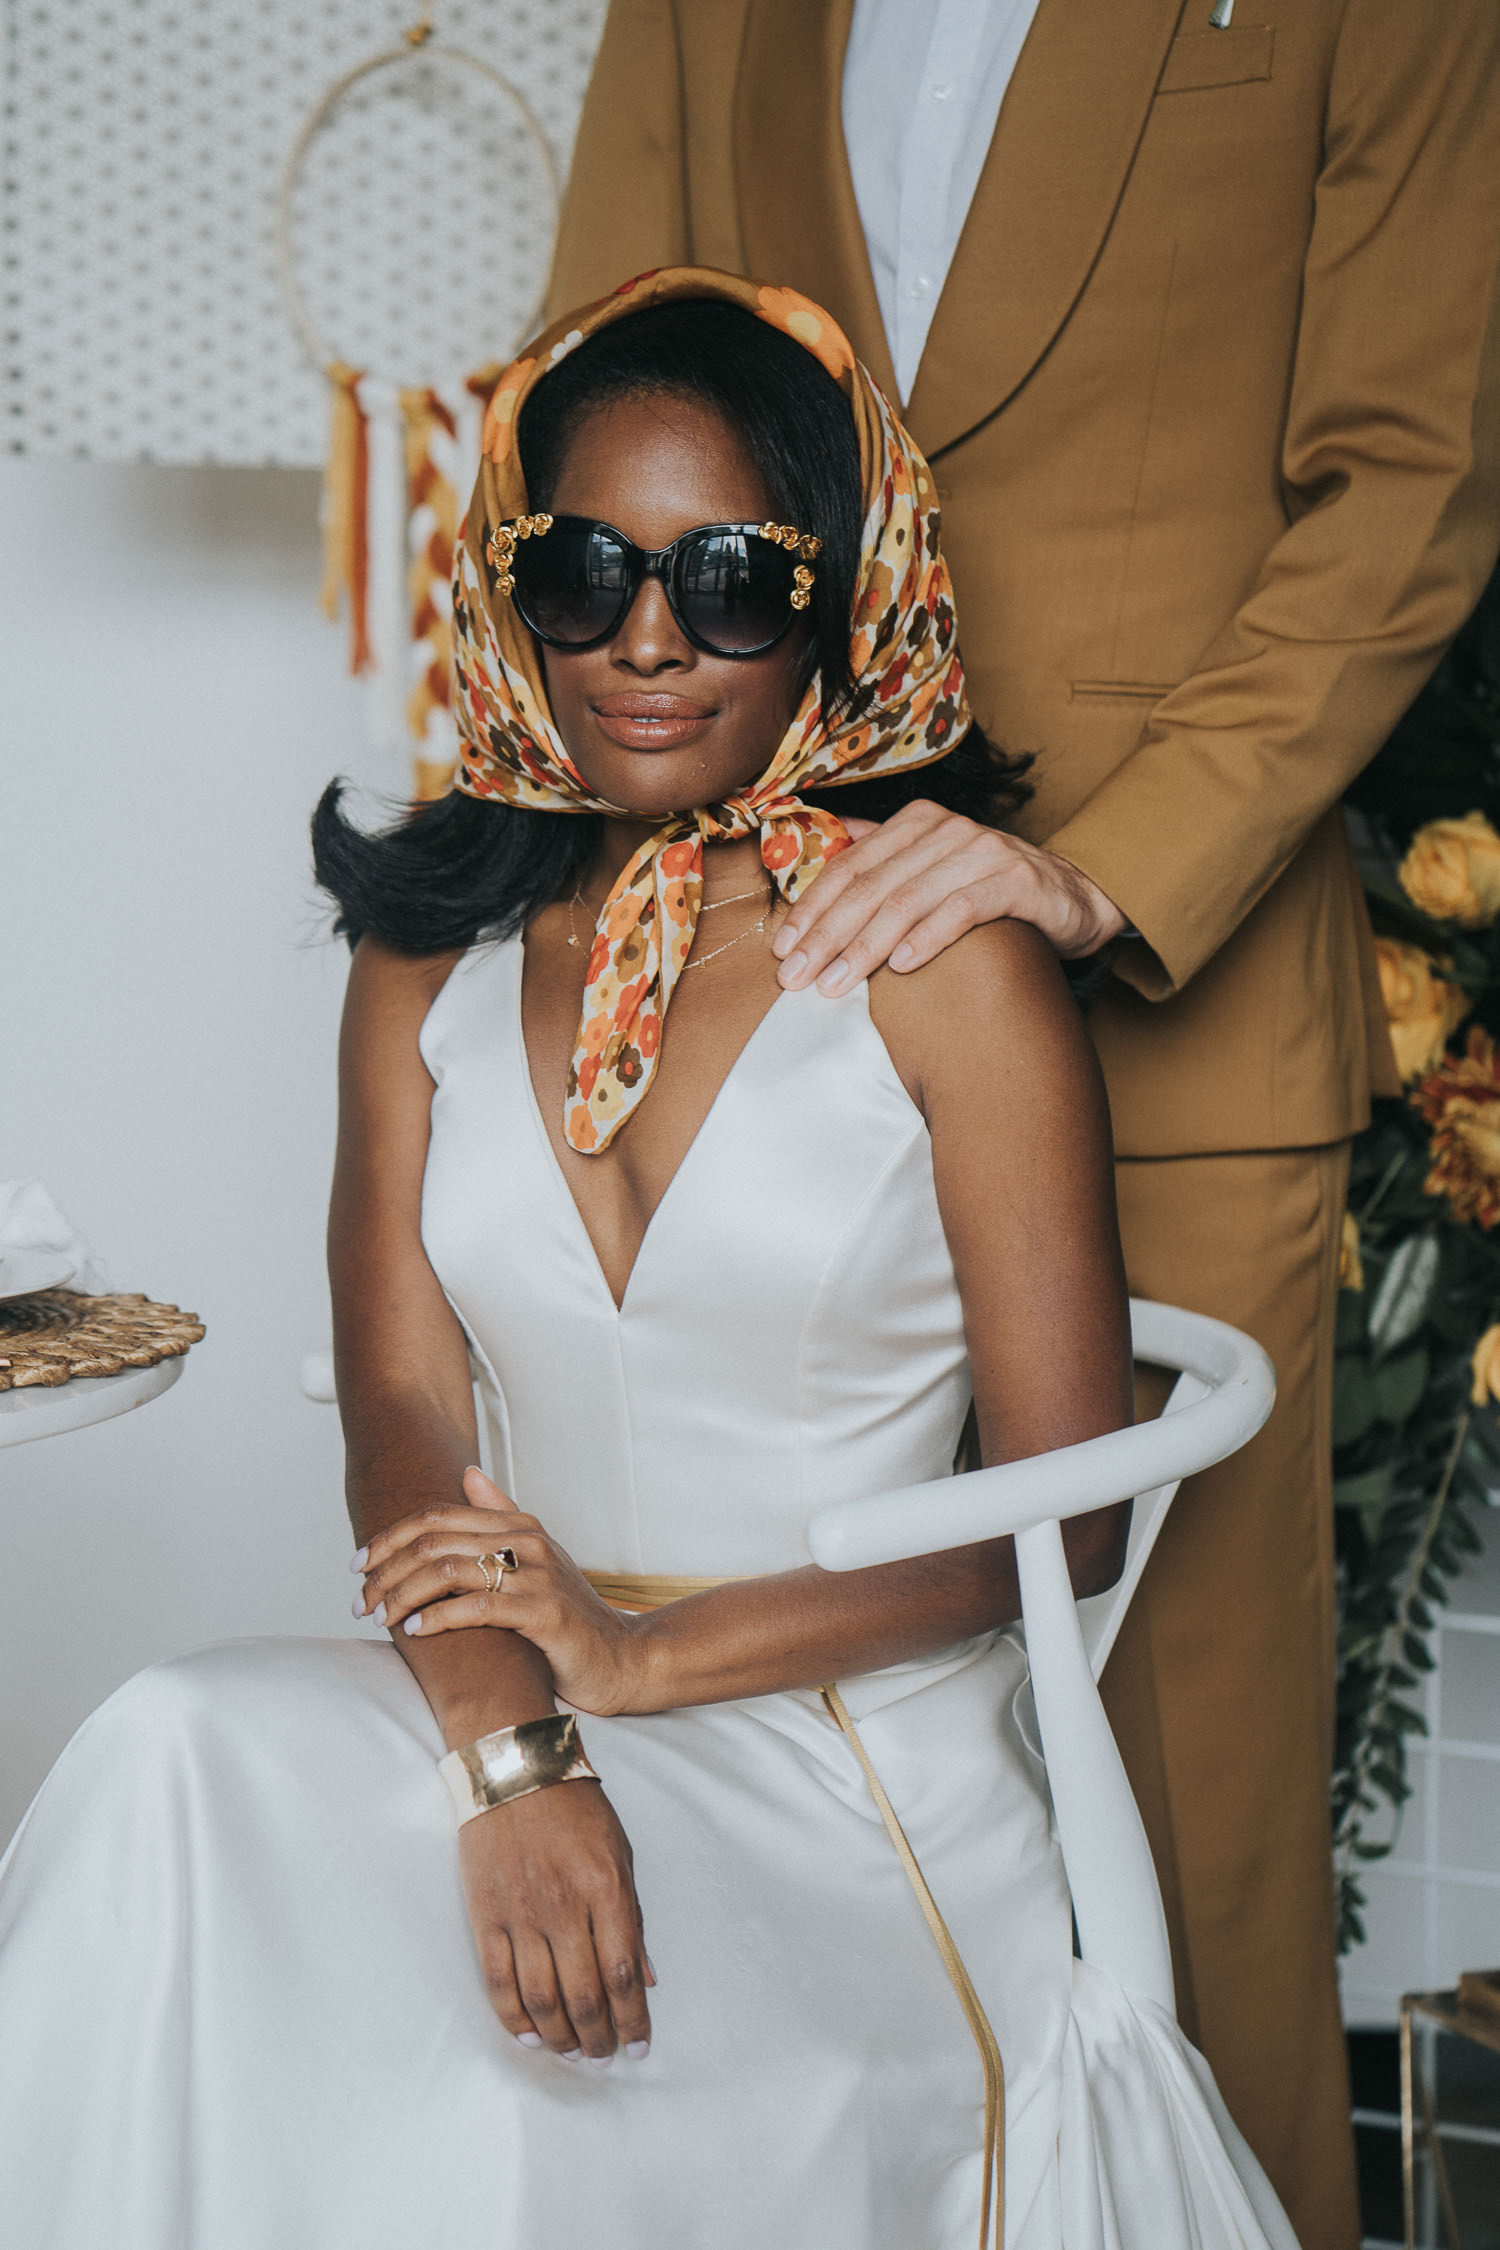 Groovy Wedding Inspiration from the 70s